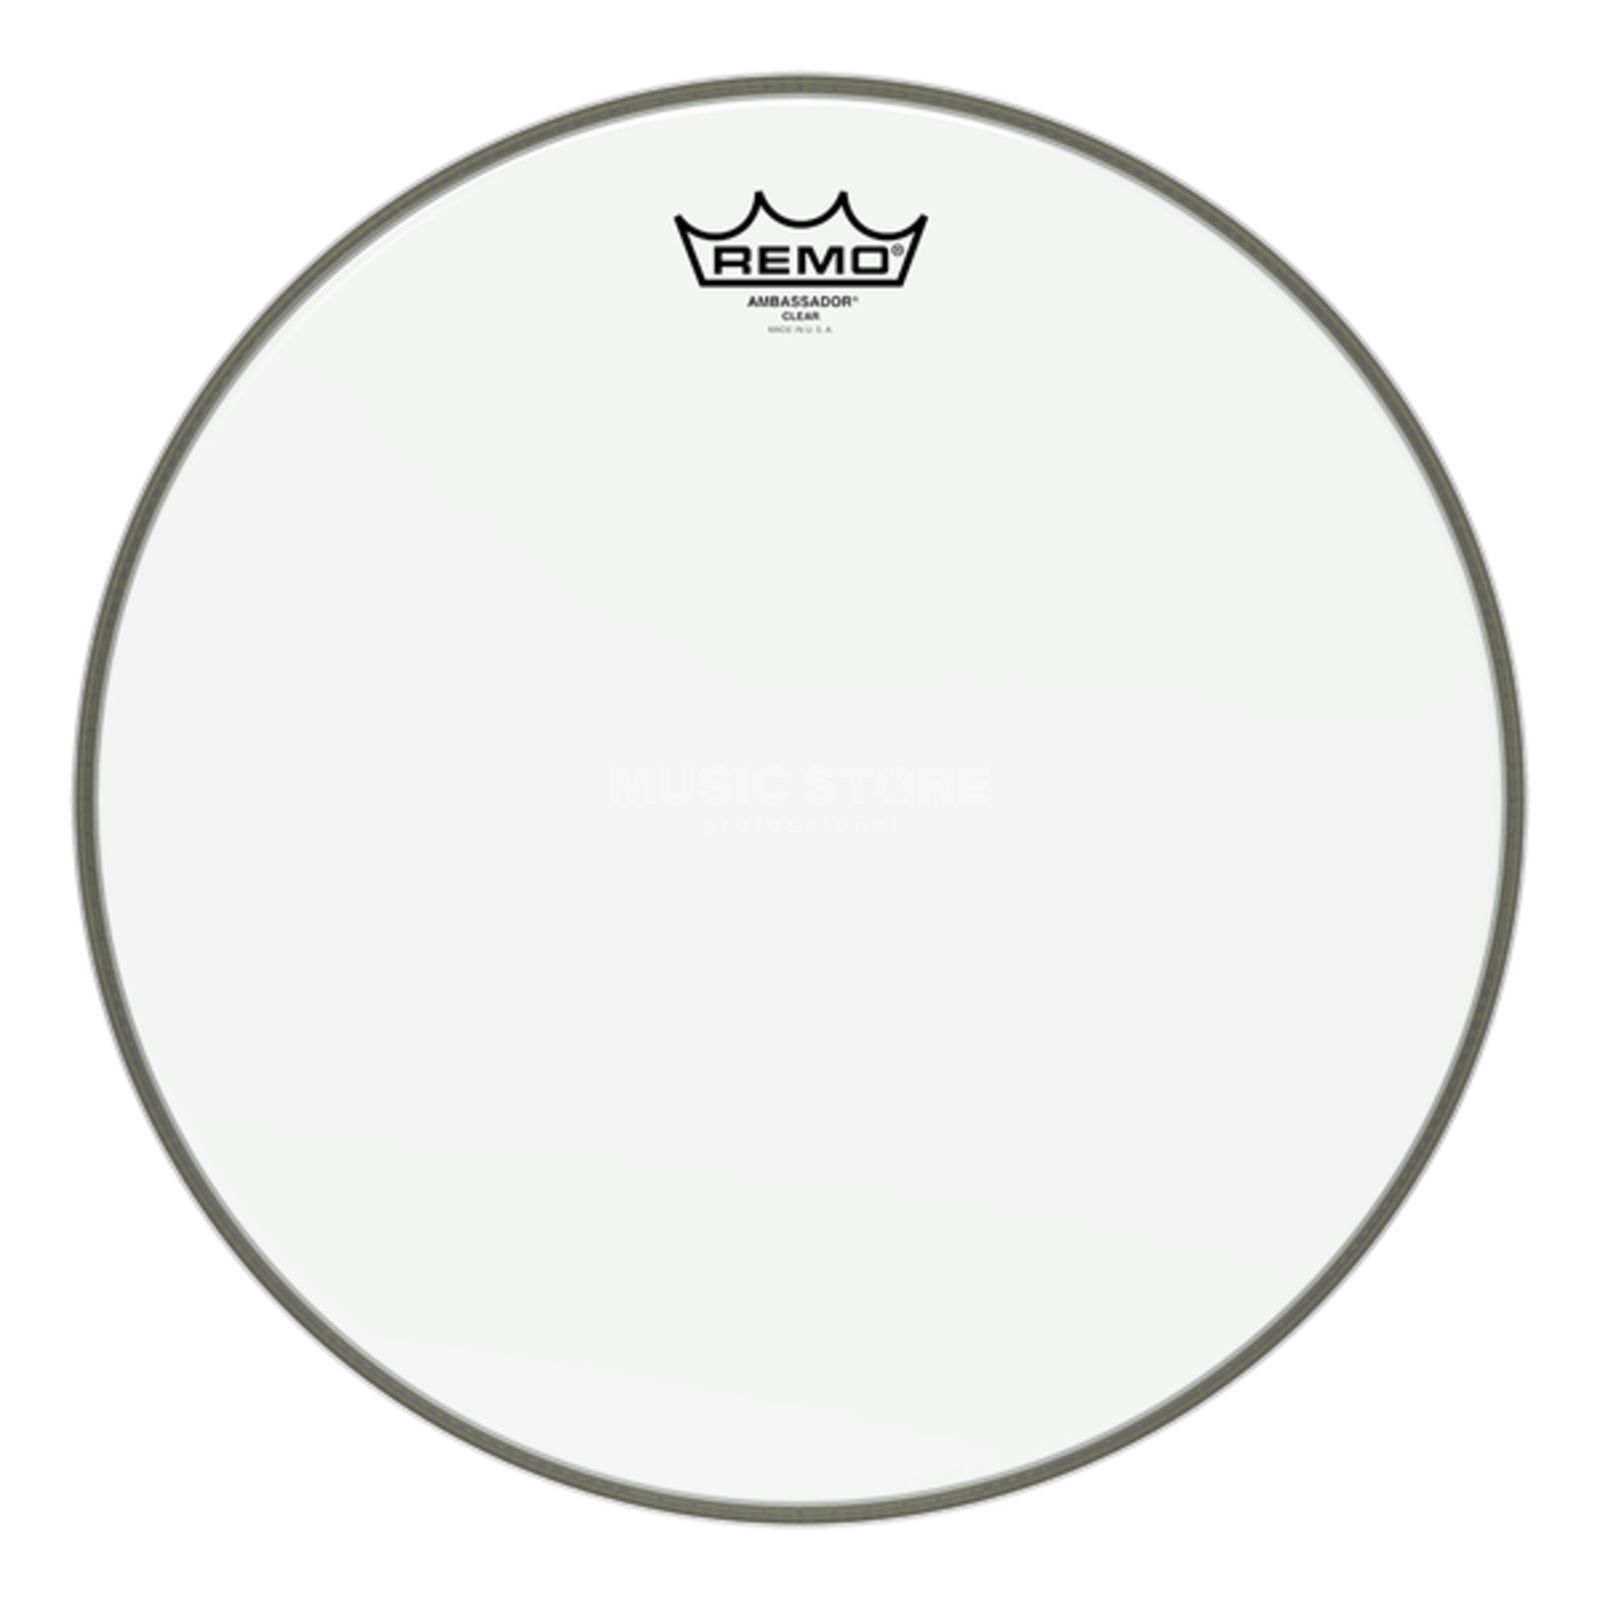 "Remo Ambassador Clear 20"", BassDrum Batter/Reso Product Image"